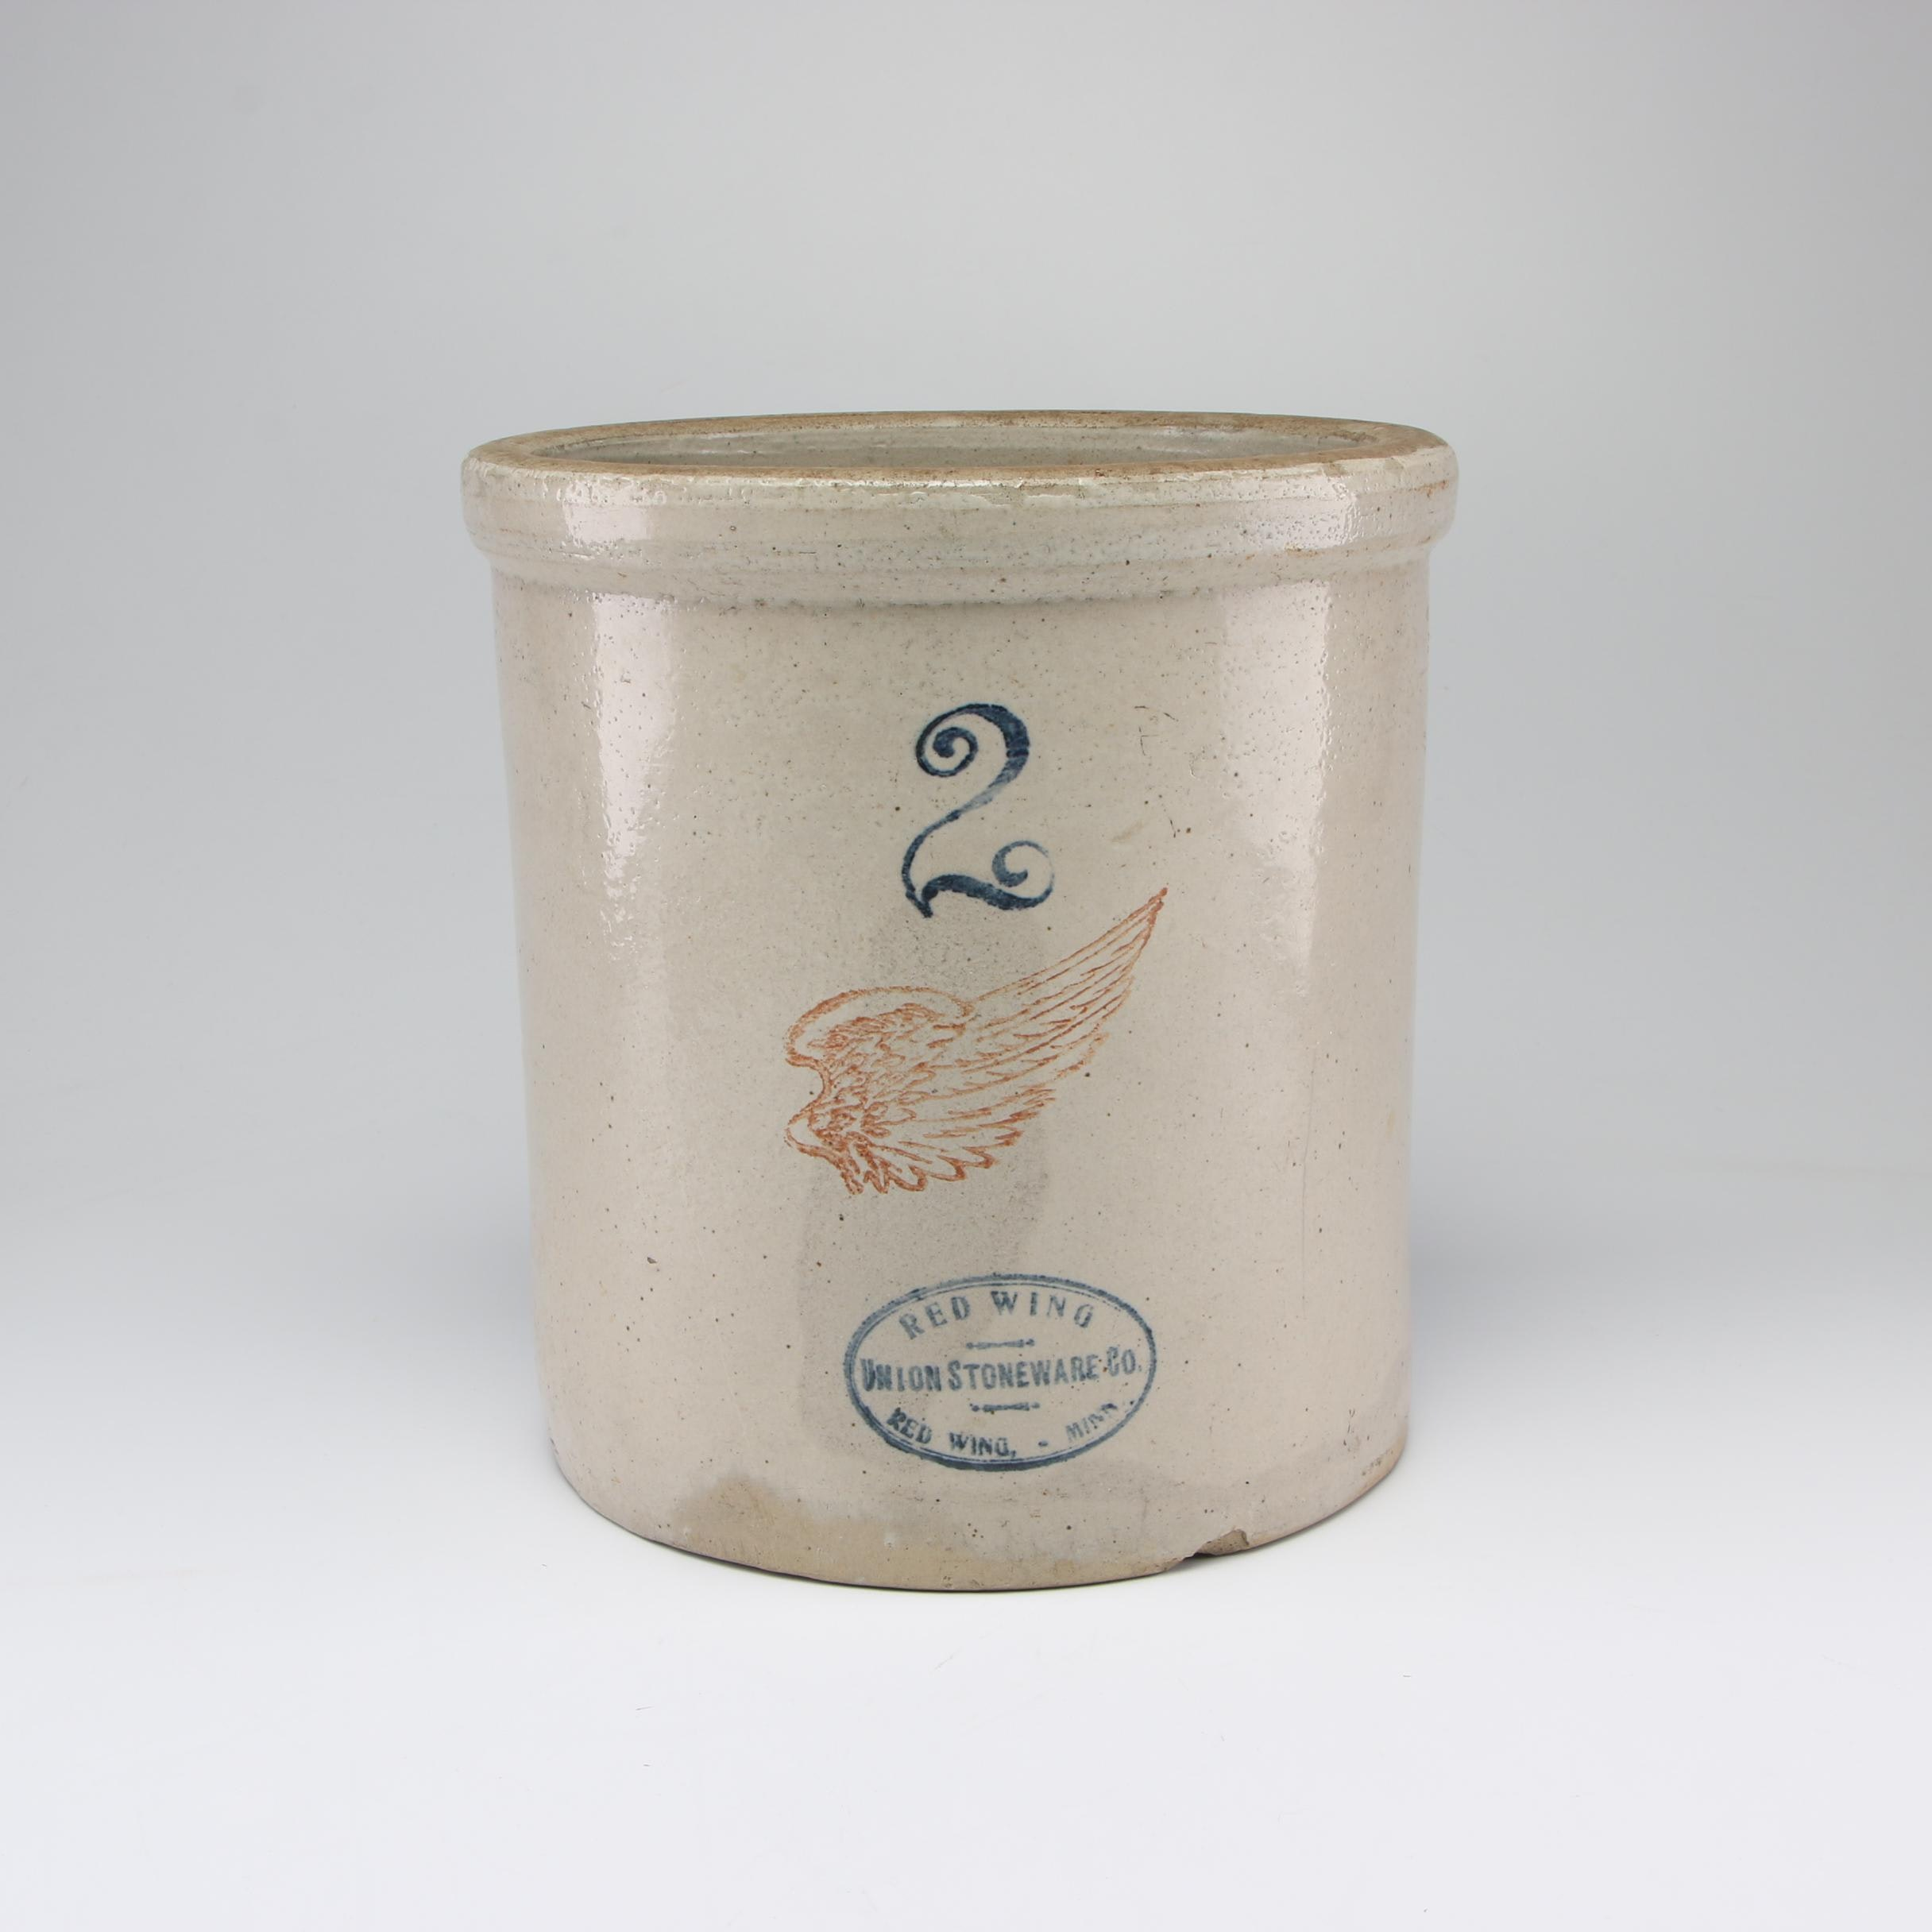 Red Wing Two Gallon Stoneware Crock